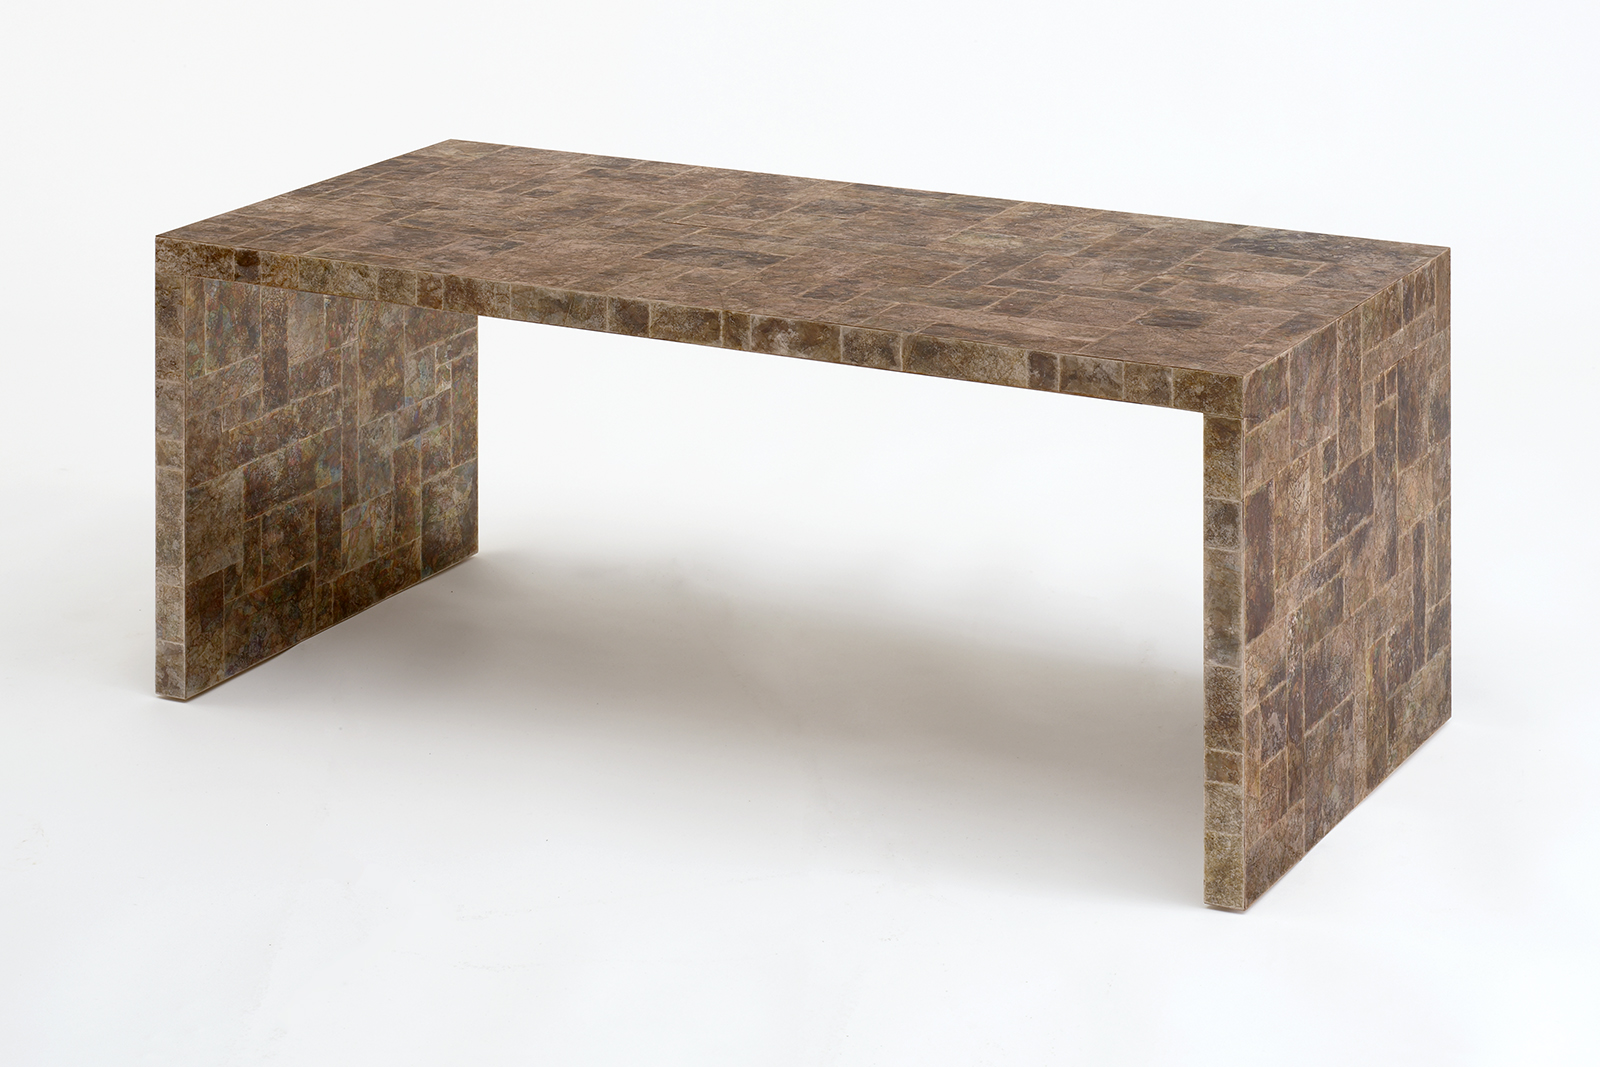 J.m. Frank Inspired Coffee Table In Mica